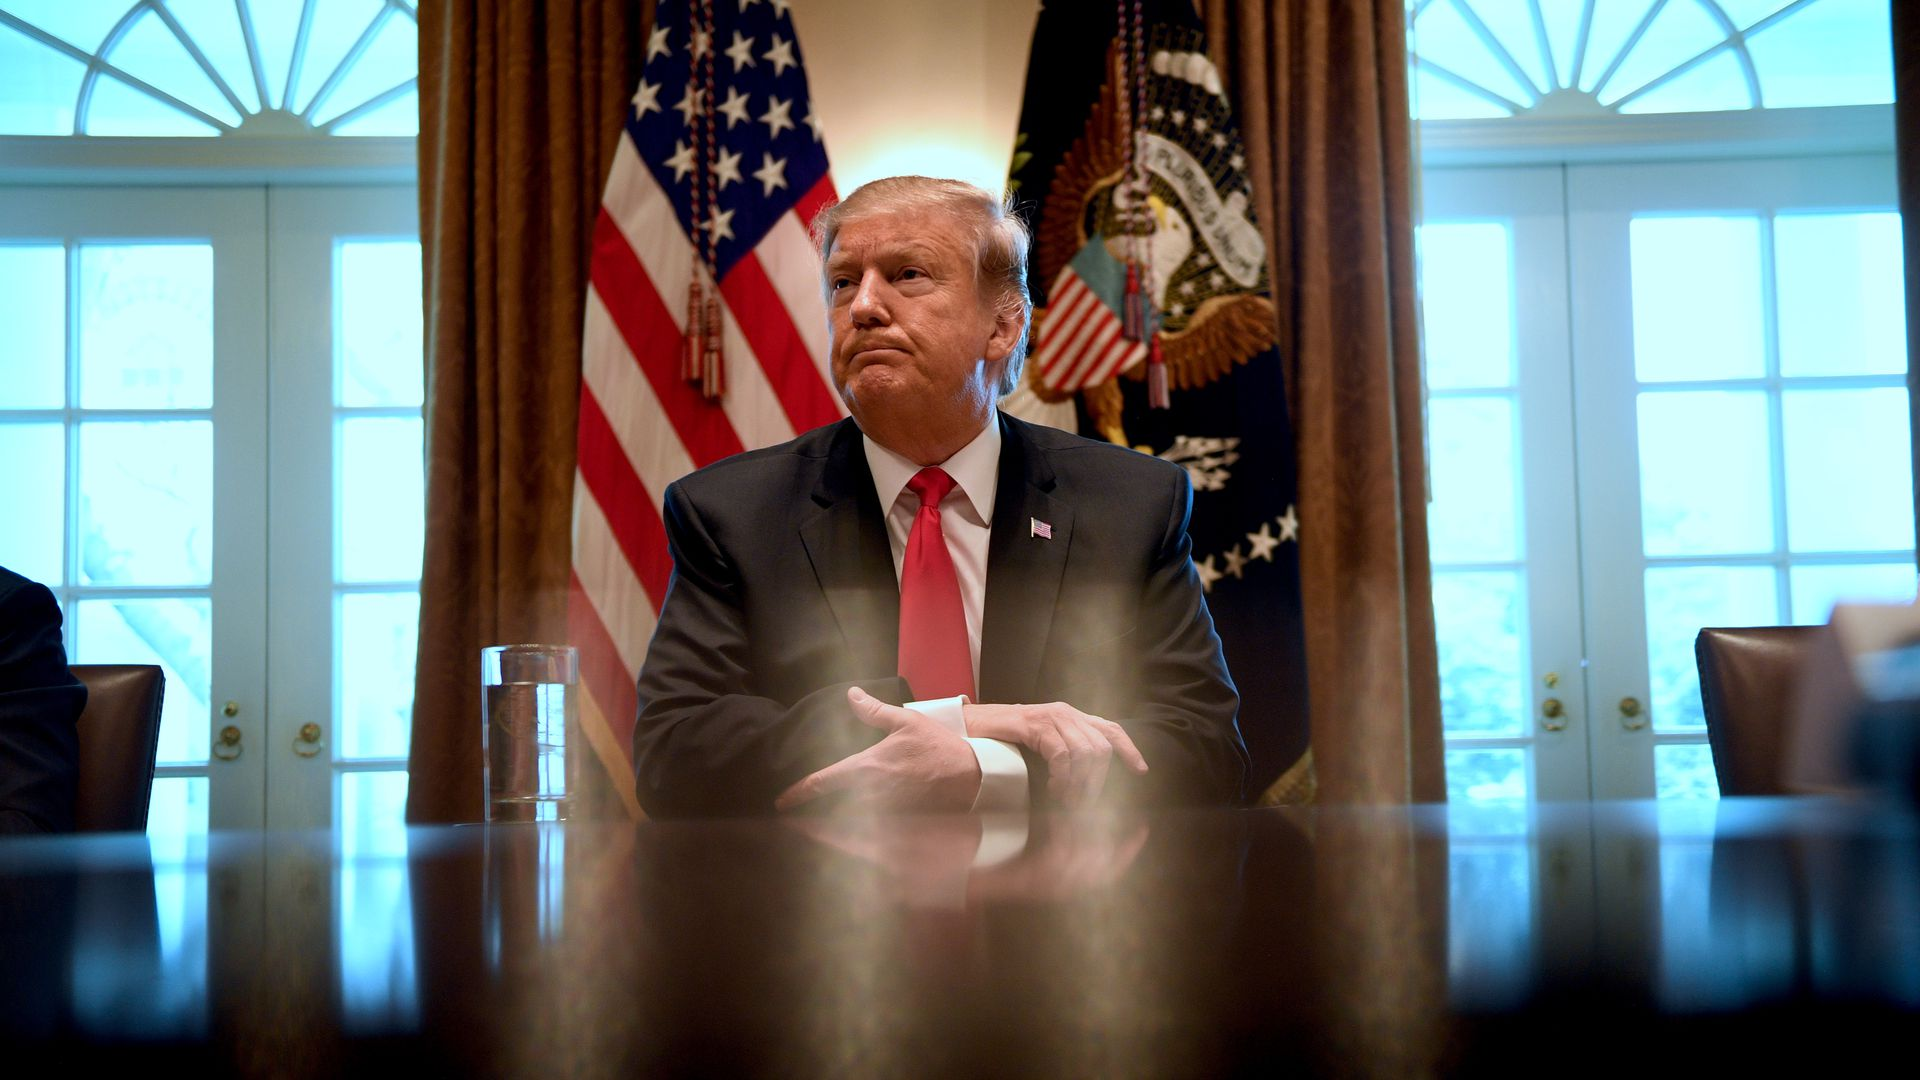 In this image, Trump sits at a desk with his hands folded and listens to someone out of view speak. There are two flags behind him.